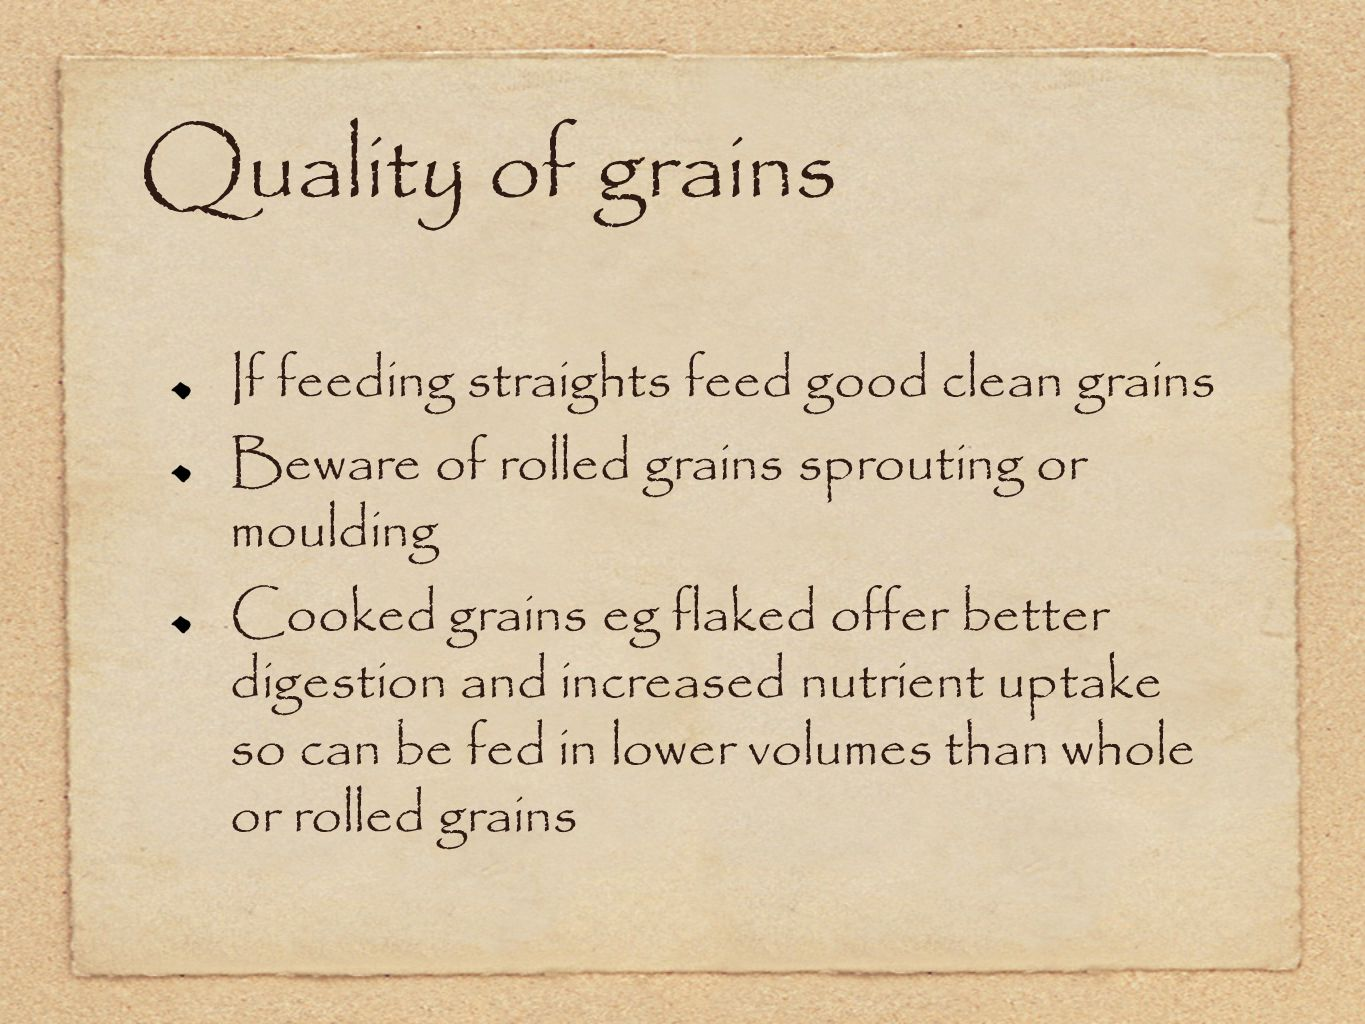 Quality of grains If feeding straights feed good clean grains Beware of rolled grains sprouting or moulding Cooked grains eg flaked offer better digestion and increased nutrient uptake so can be fed in lower volumes than whole or rolled grains